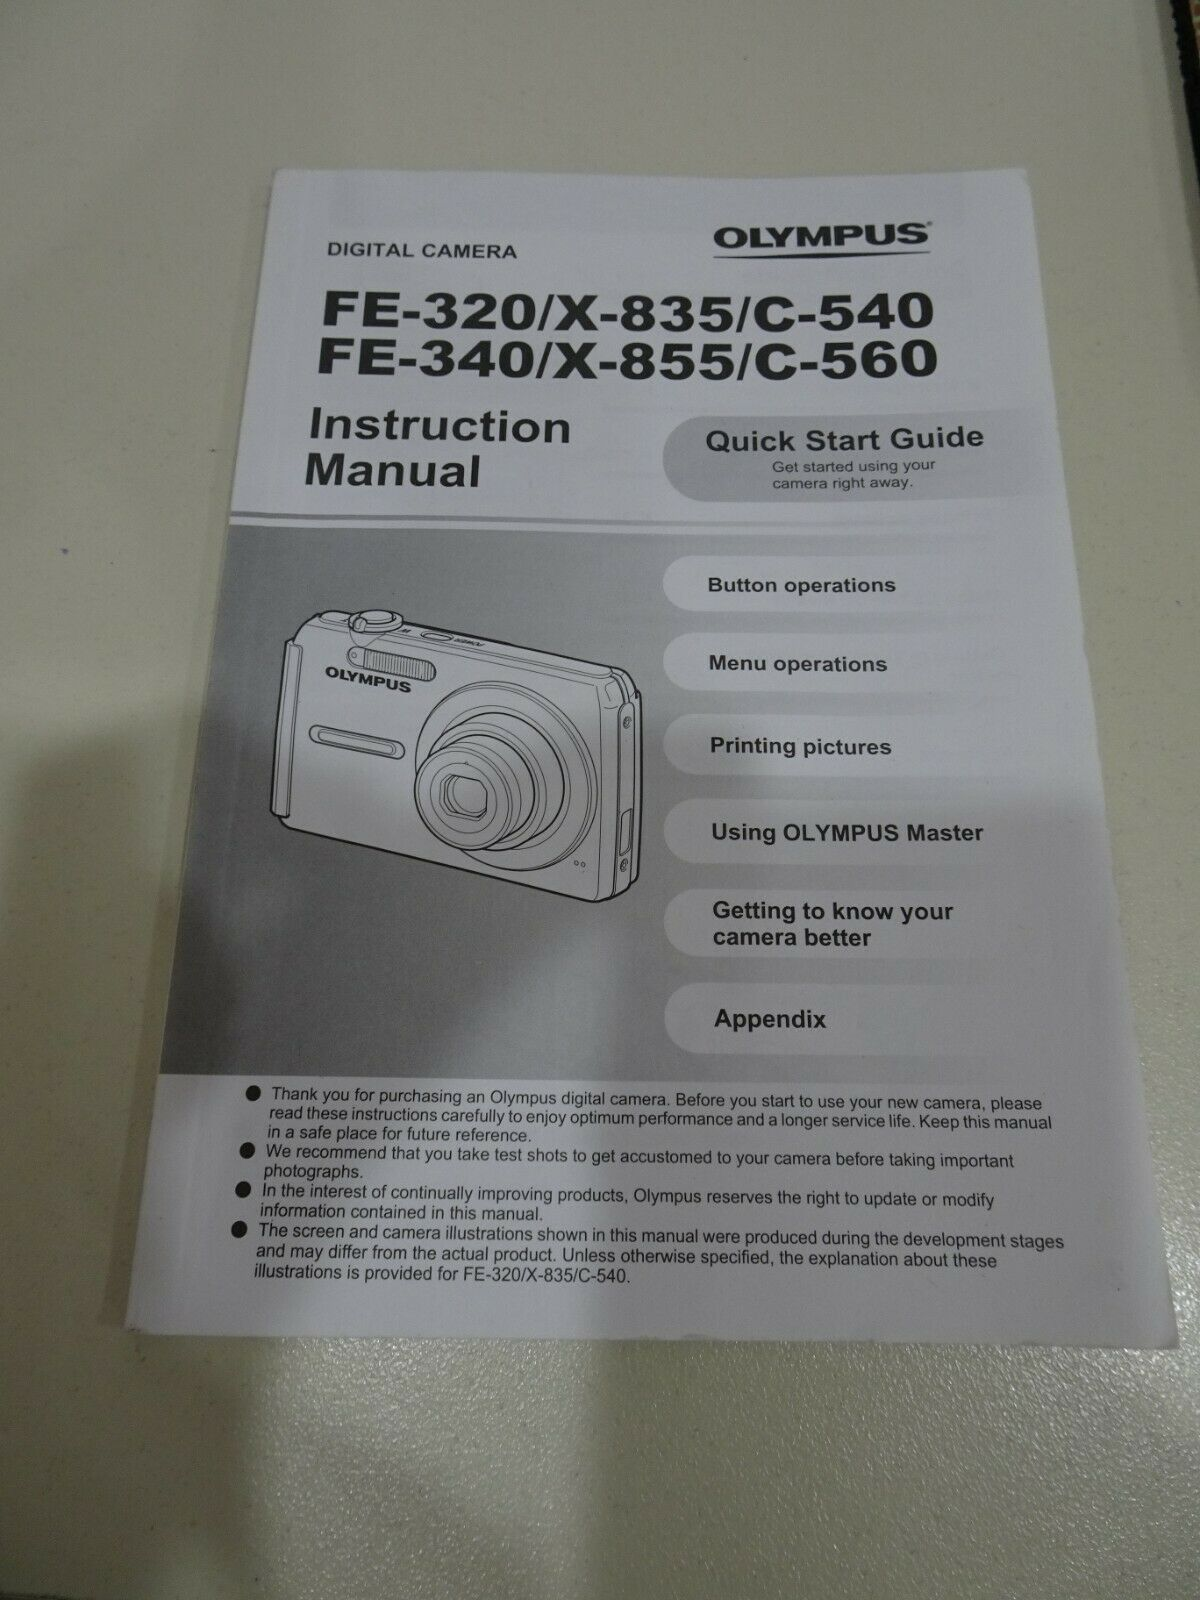 OLYMPUS FE-320 FE-340 DIGITAL CAMERA Manual Instructions Booklet Guide ONLY - $5.99